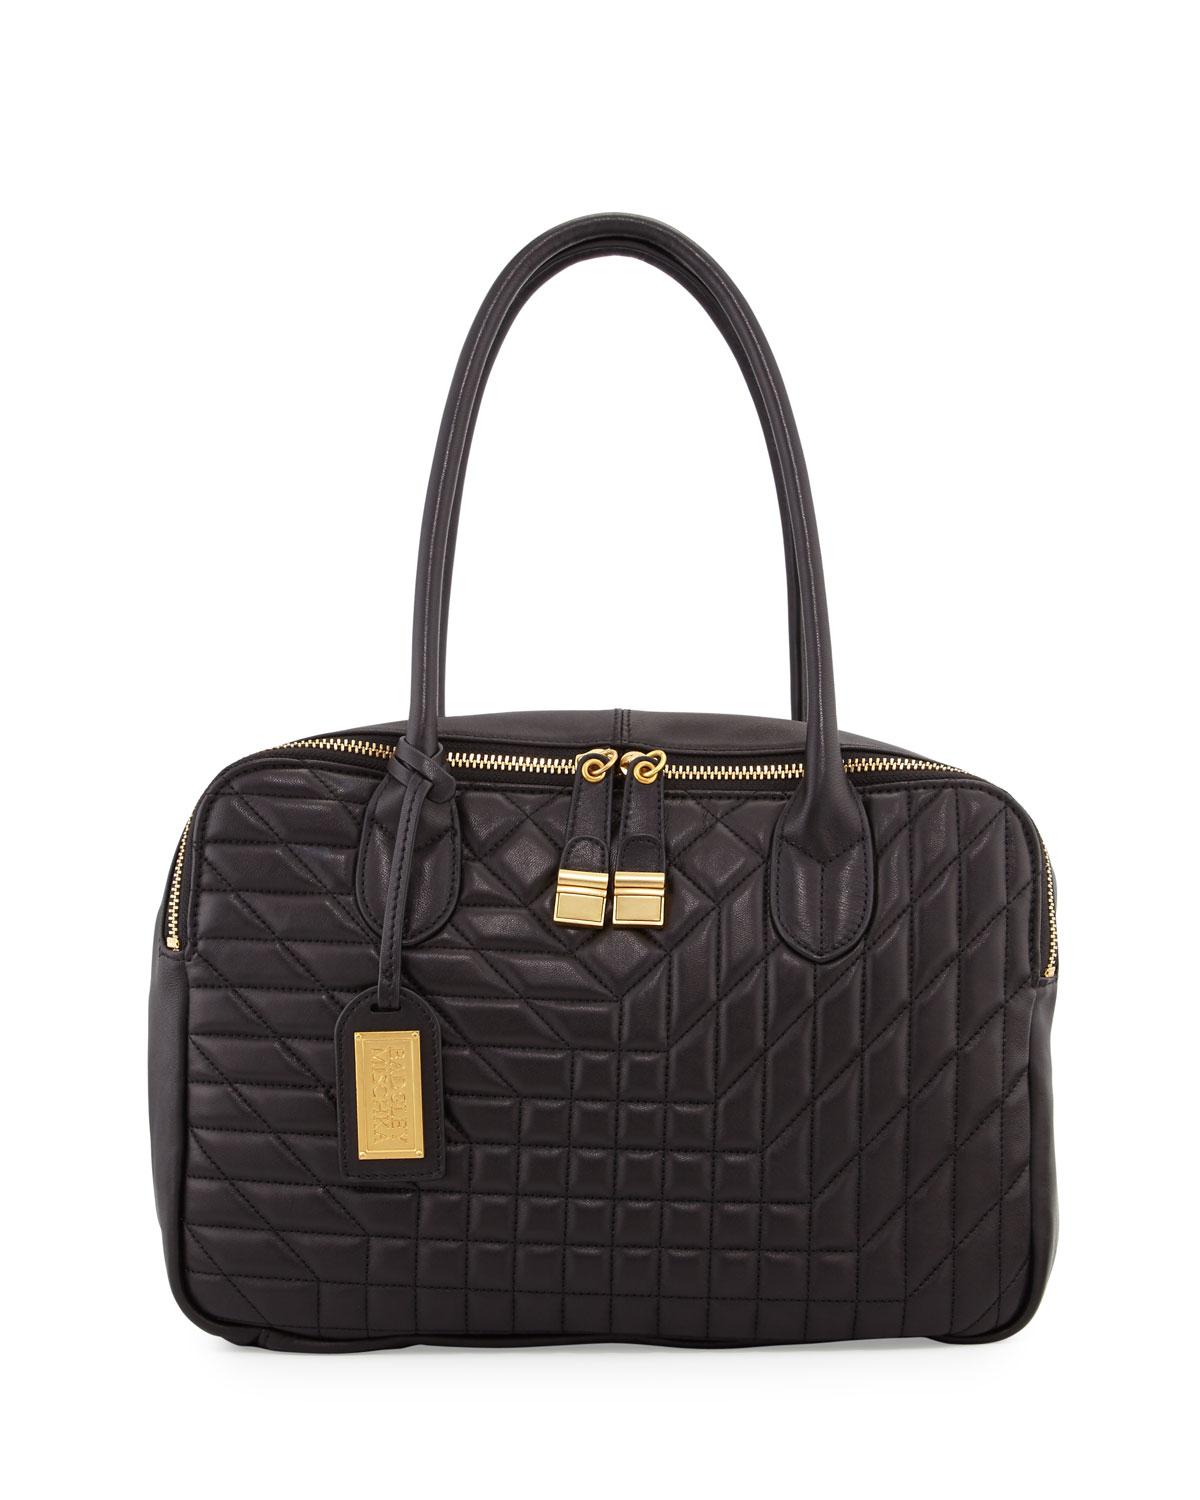 Lyst - Badgley Mischka Coralie Quilted Leather Tote Bag in Black 4b5ba6520b9e6